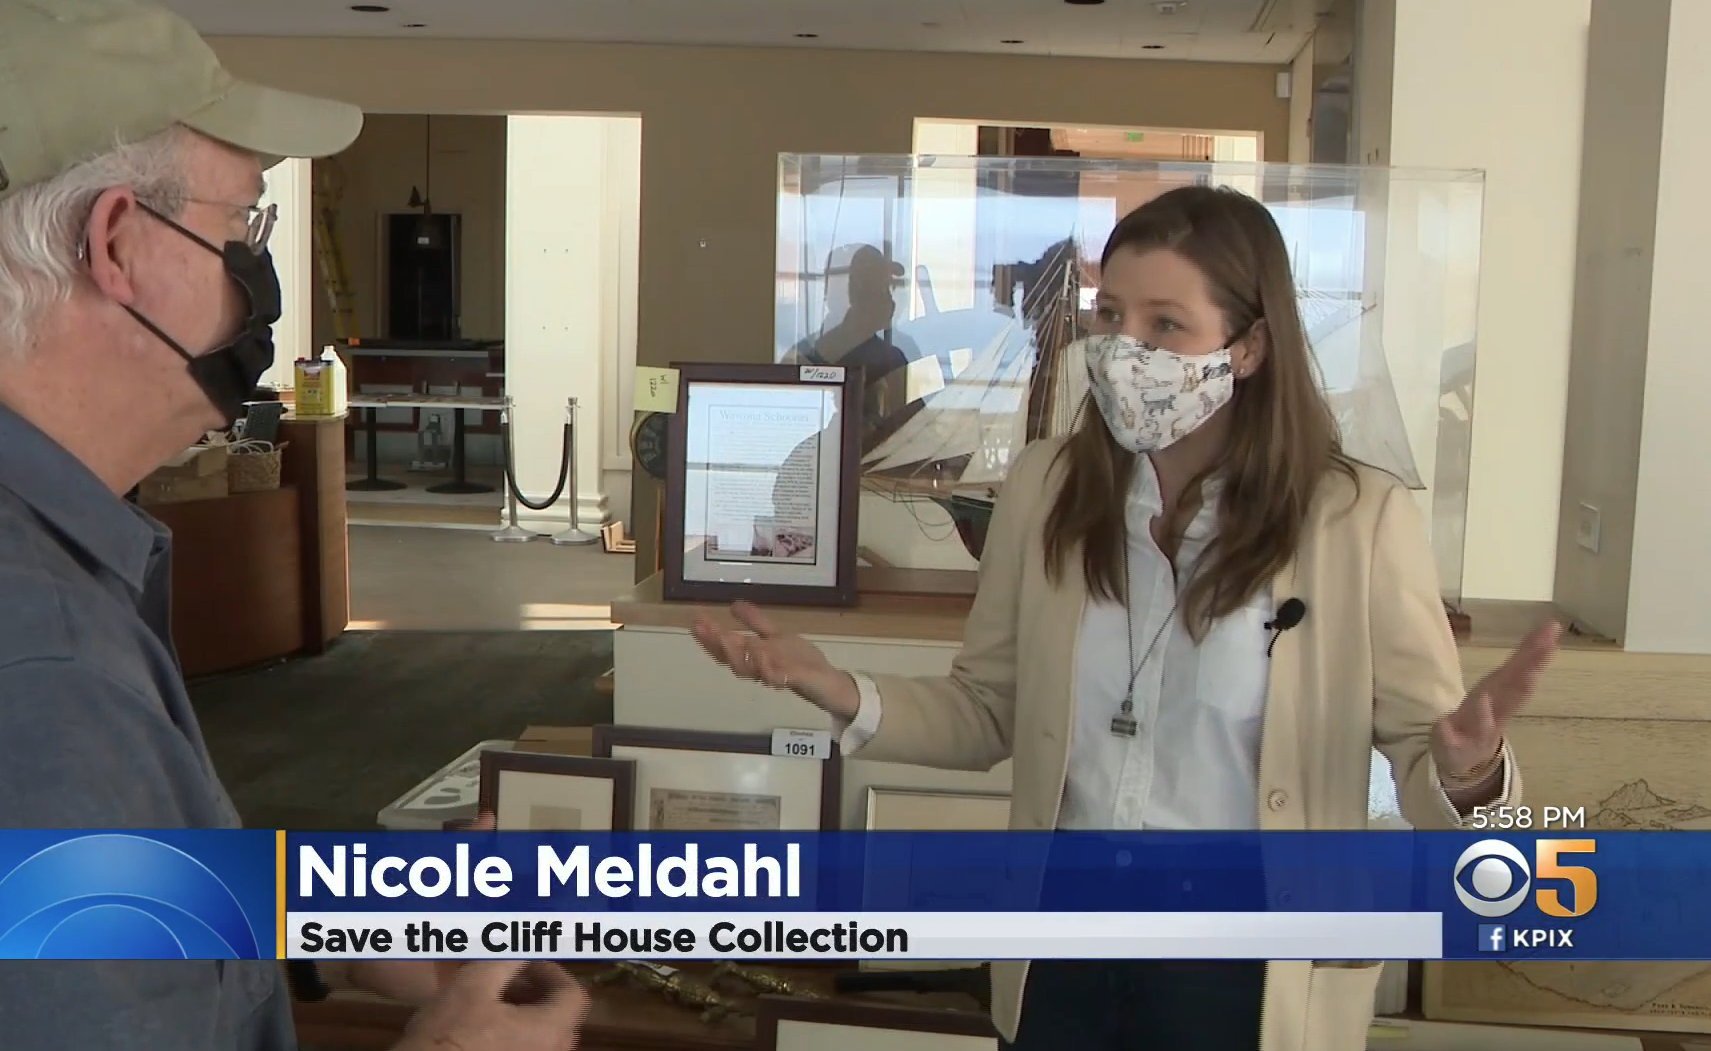 Nicole Mendahl being interviewed by KPIX Tom Ford